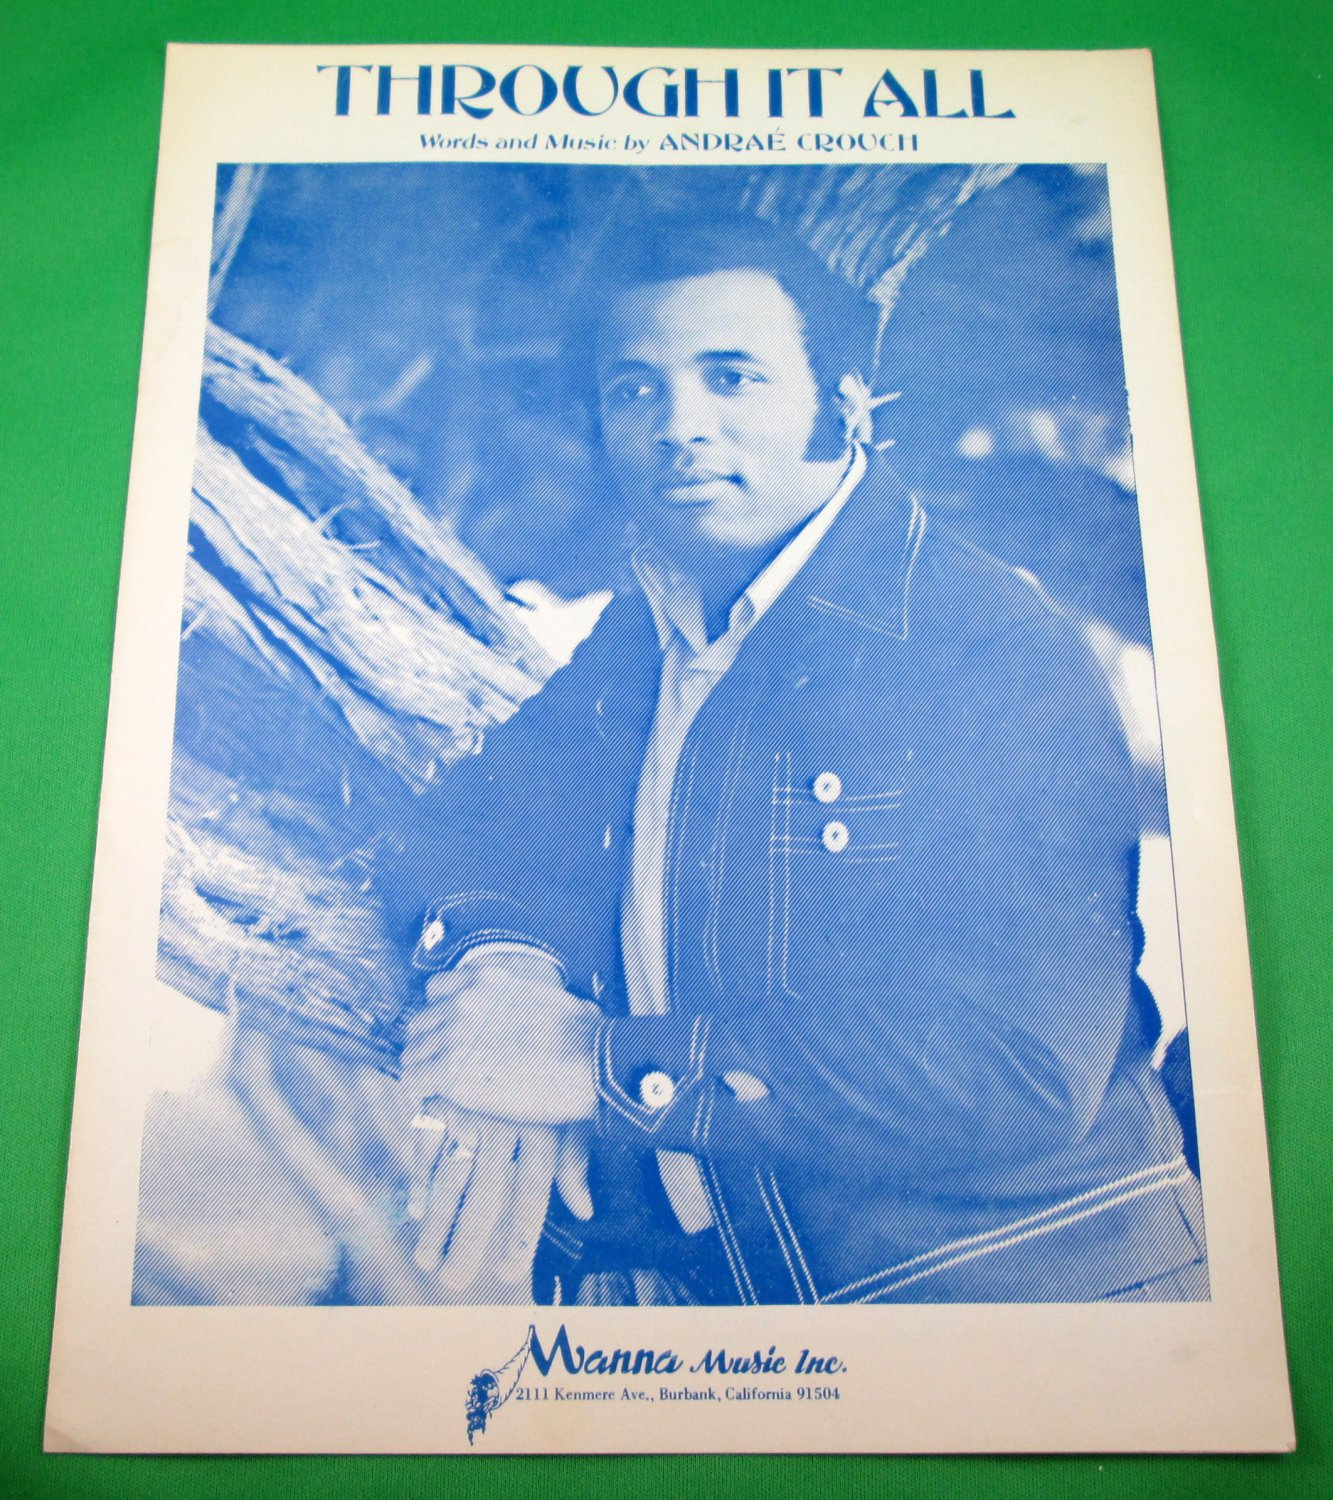 THROUGH IT ALL Original Sheet Music ANDRA� CROUCH COVER © 1971